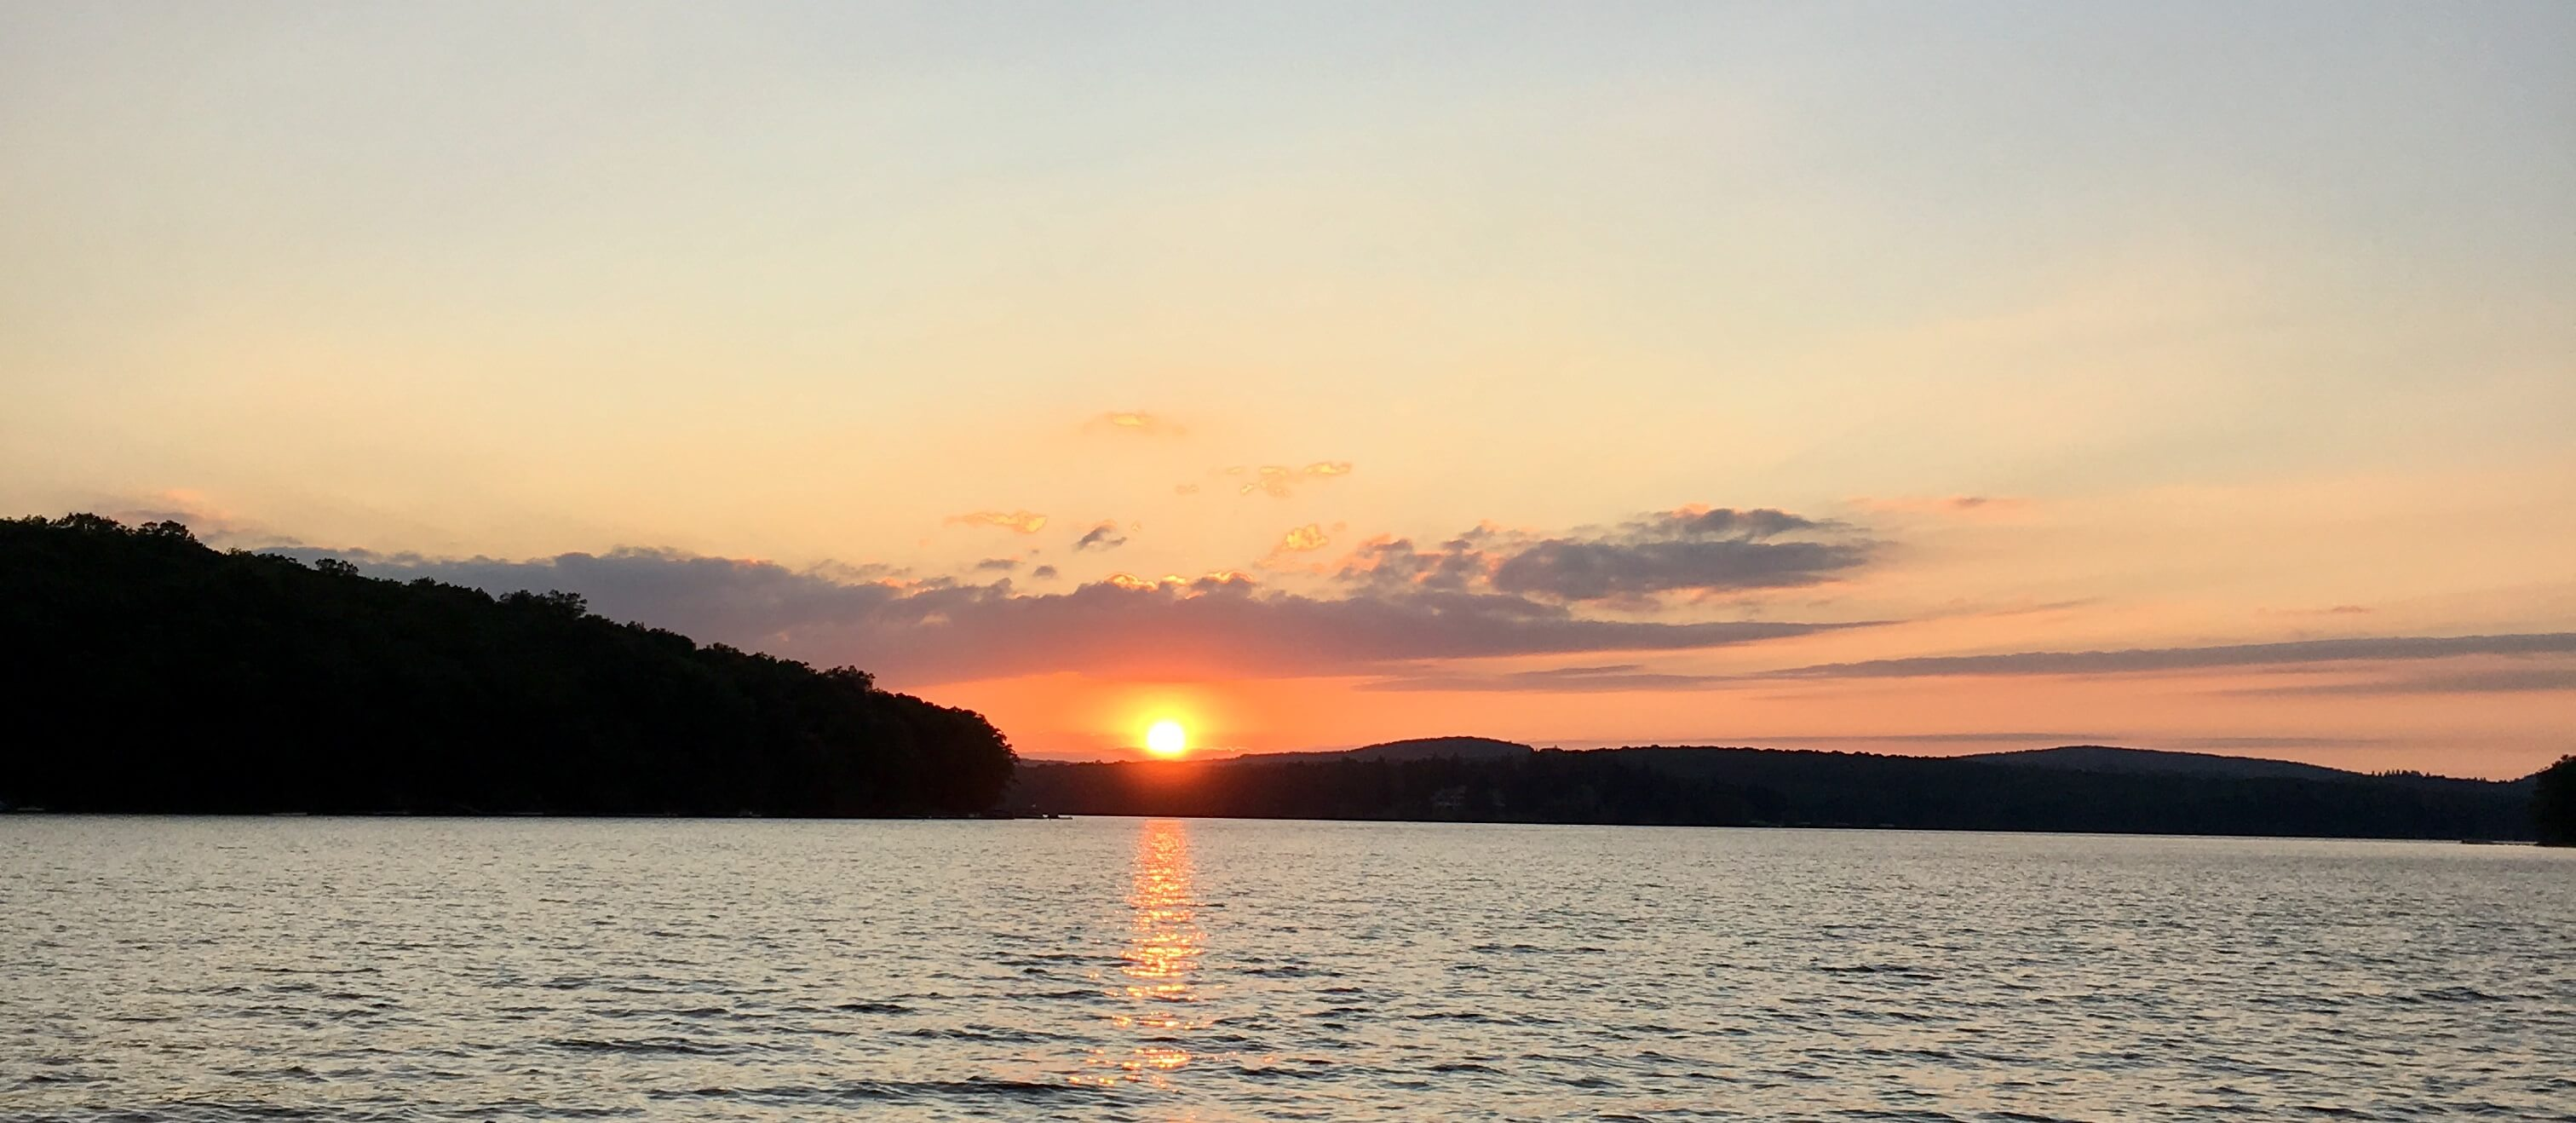 Deep Creek Lake, MD Sunset by Scon Boccuti